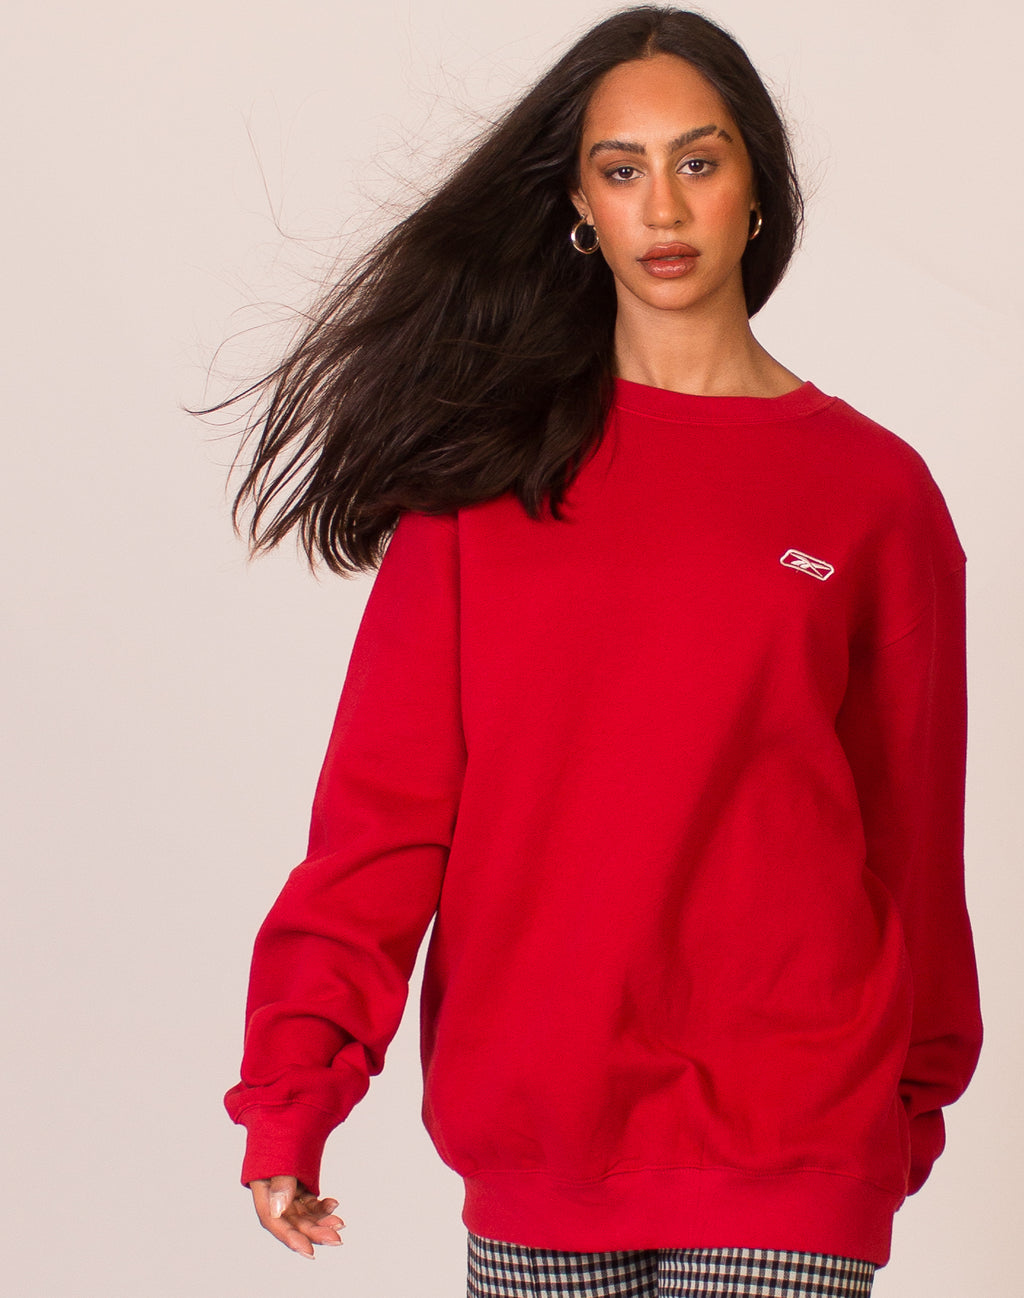 REEBOK RED SWEATSHIRT